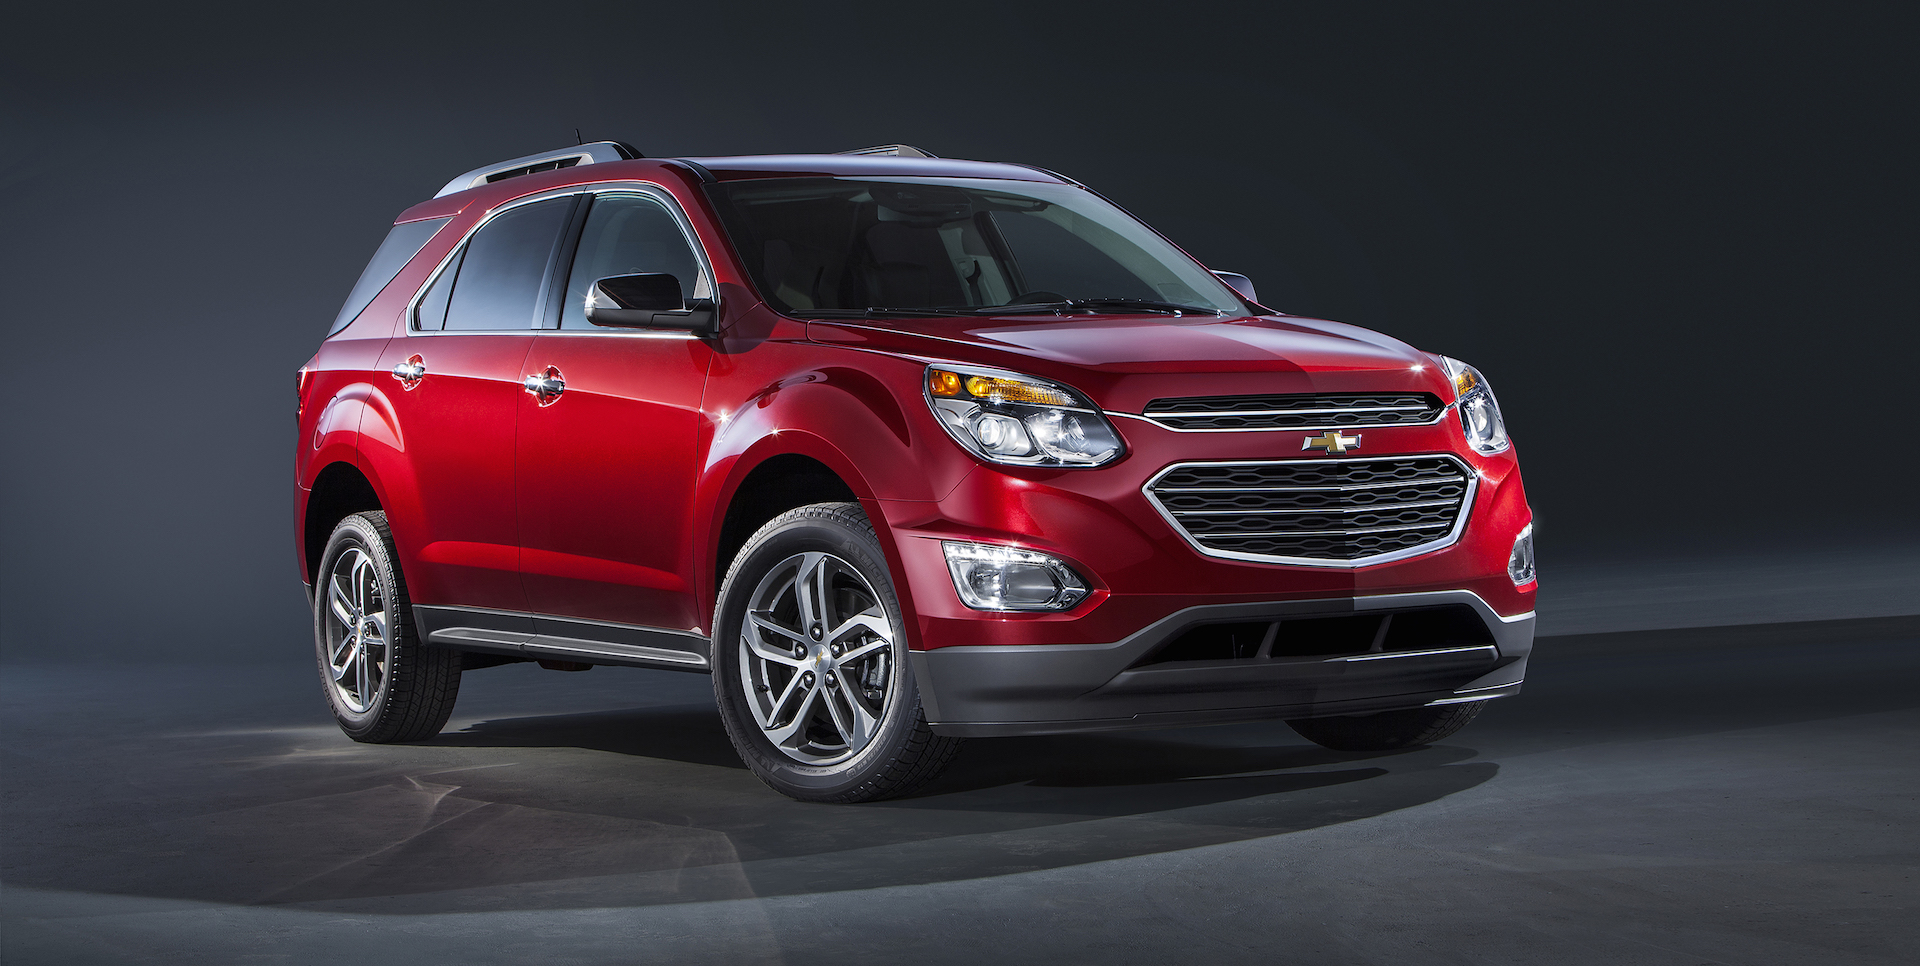 Compare the Chevrolet Equinox to the Dodge Journey